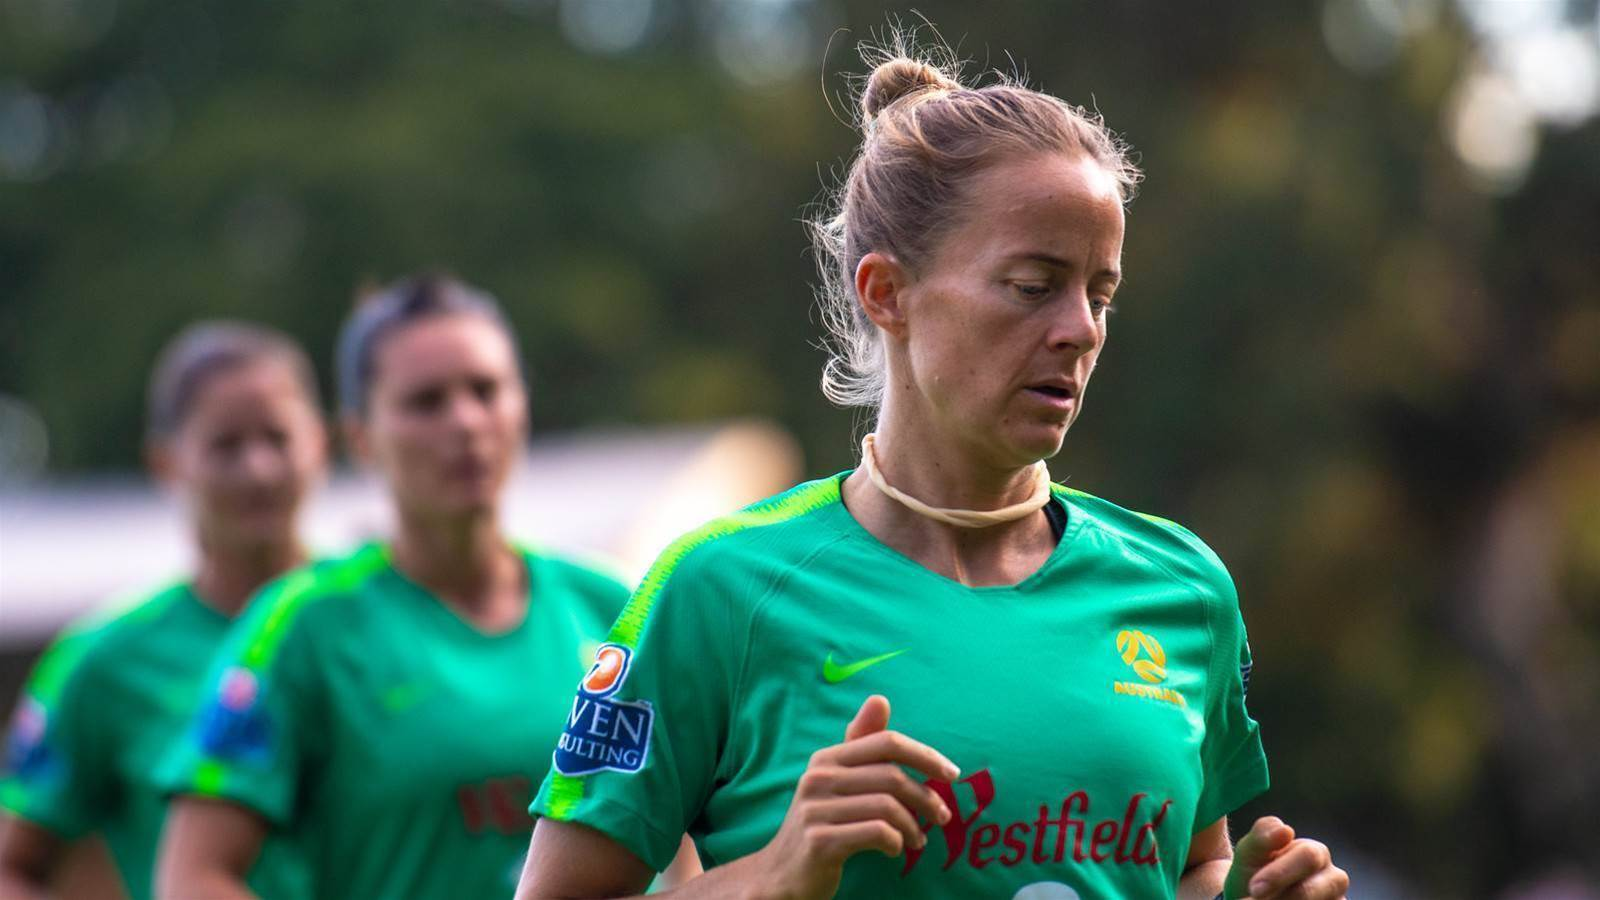 Surf's up for Luik's Matildas mates